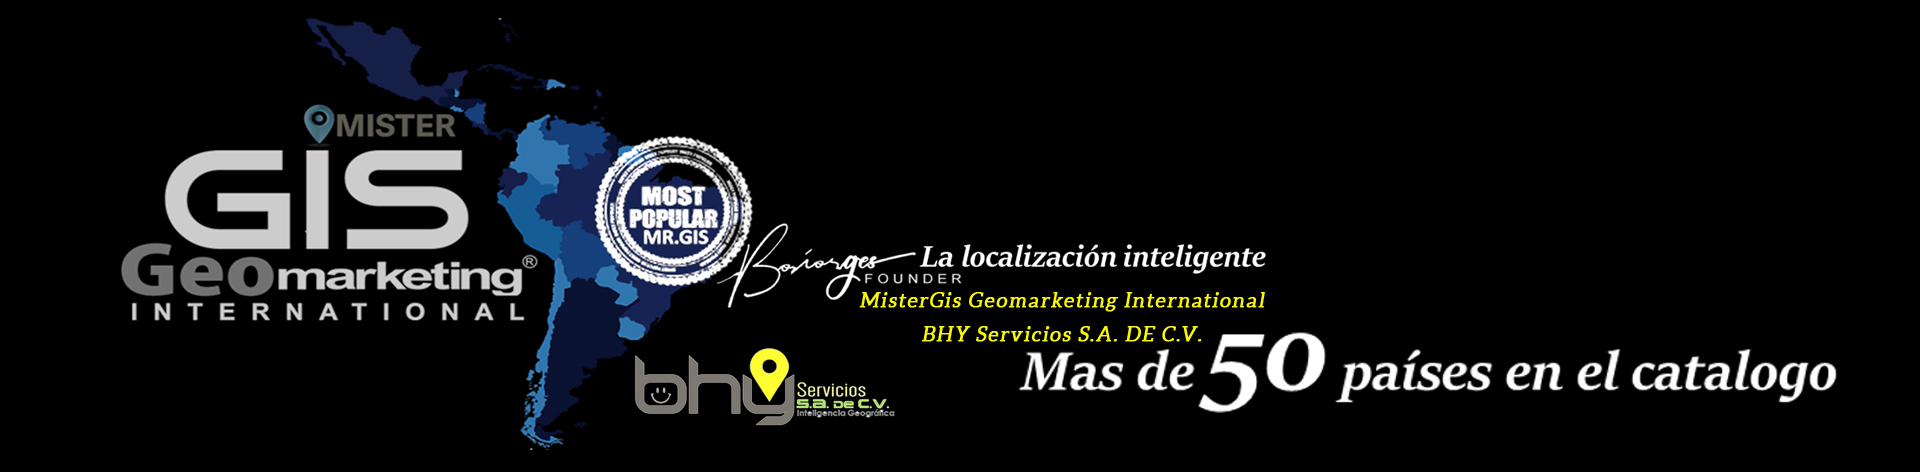 Mistergis Geomarketing International